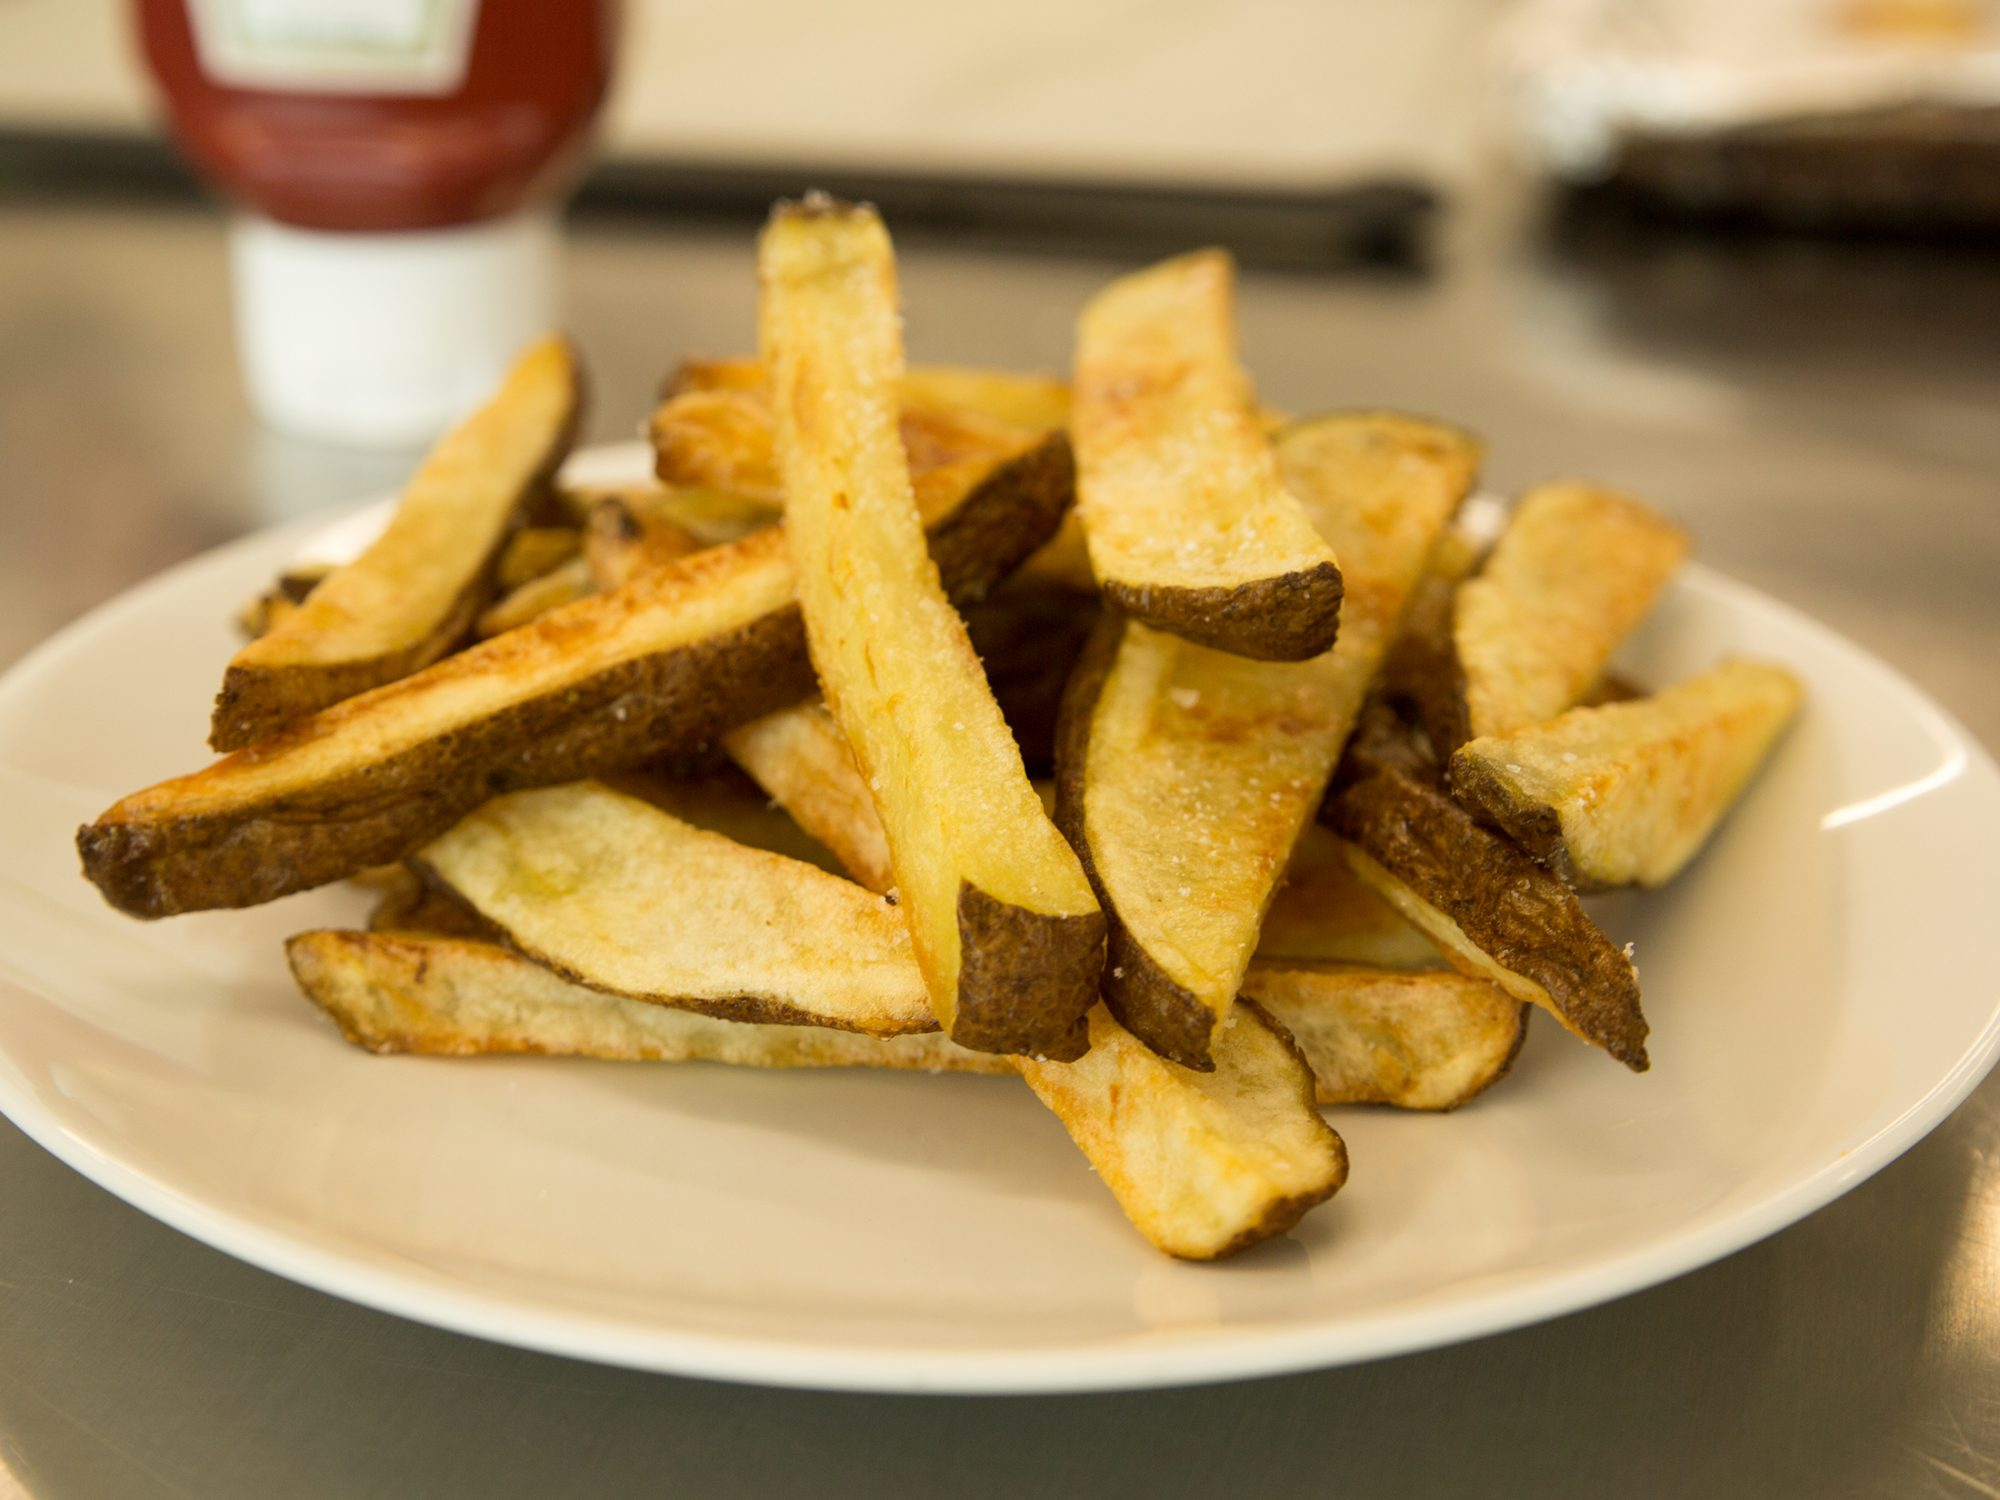 Super-Crispy Oven Fries